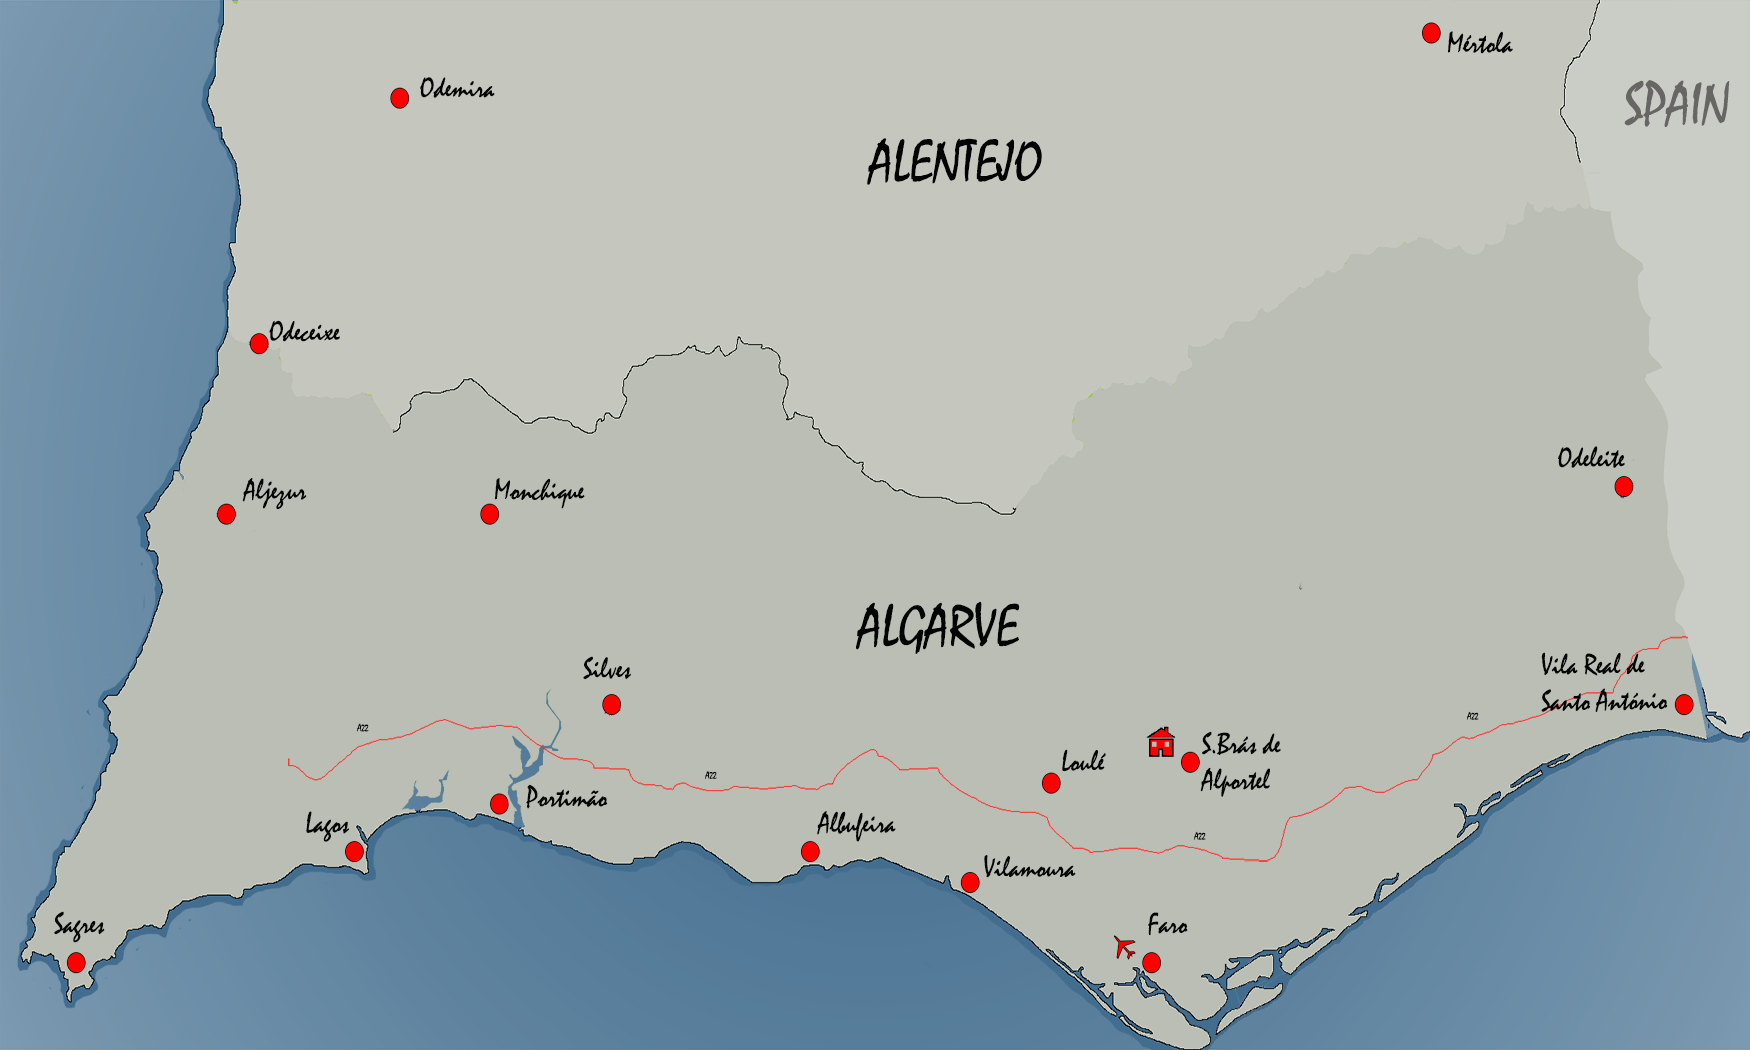 Algarve and Alentejo MAP